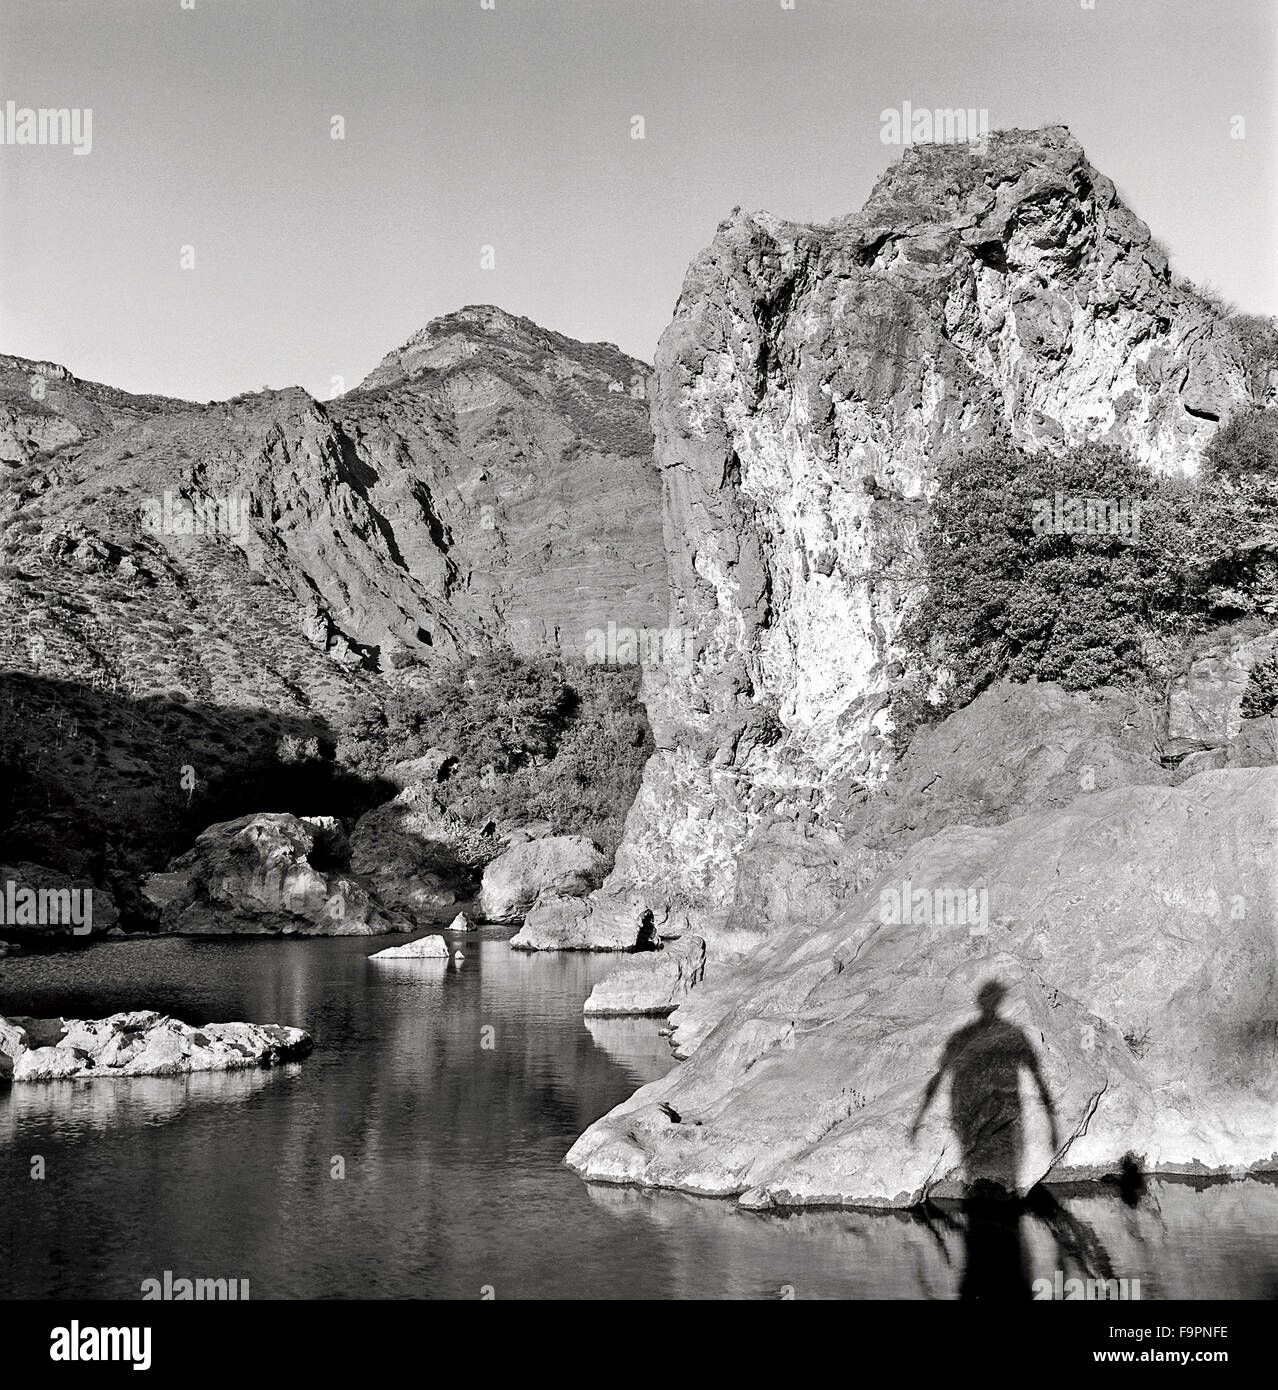 A black and white photograph of a nature scene with a person's shadow. - Stock Image